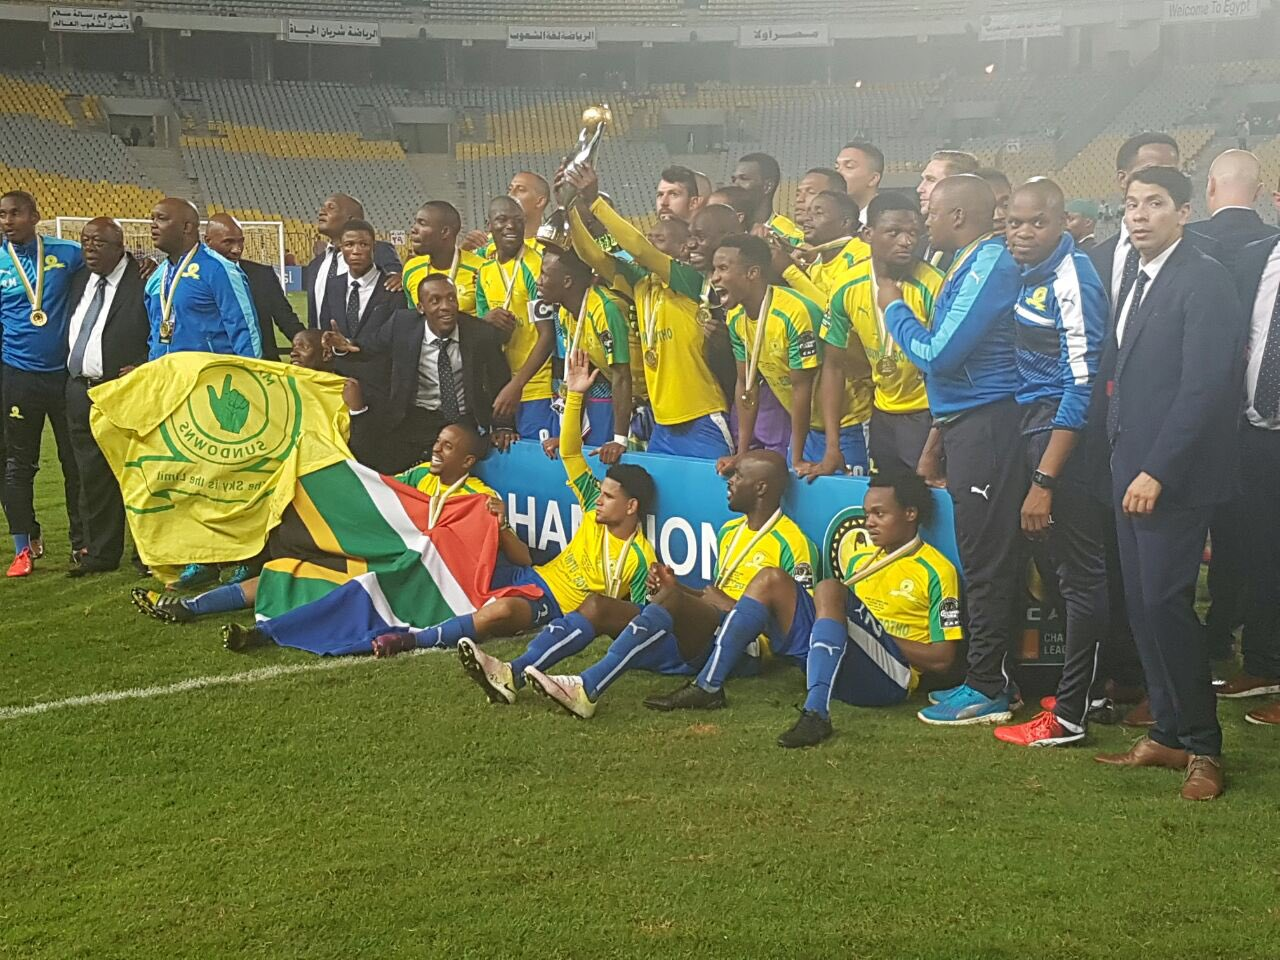 FAIRYTALE: Chelsea, Denmark, Other Teams Who Achieved 'Impossible' Feats Like Sundowns